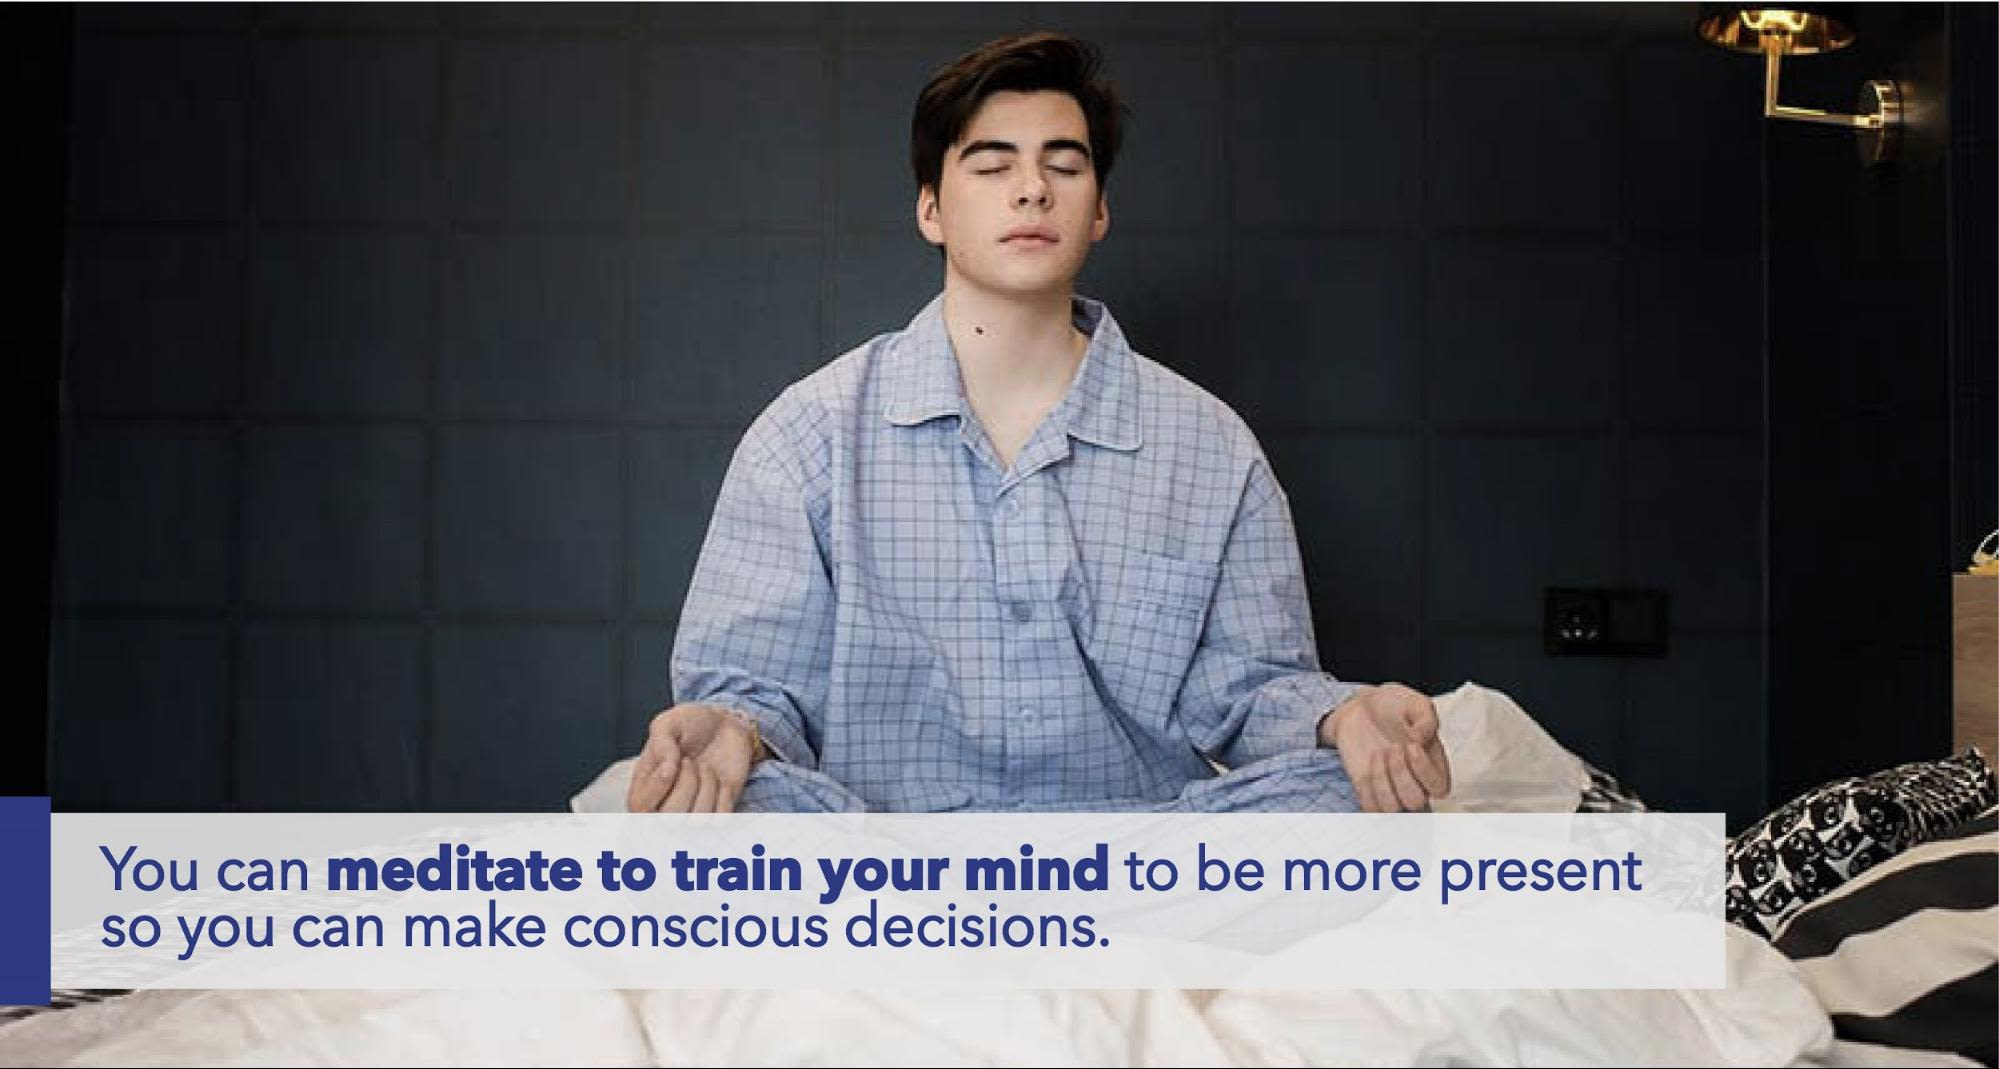 You can meditate to train your mind to be more present so you can make conscious decisions.